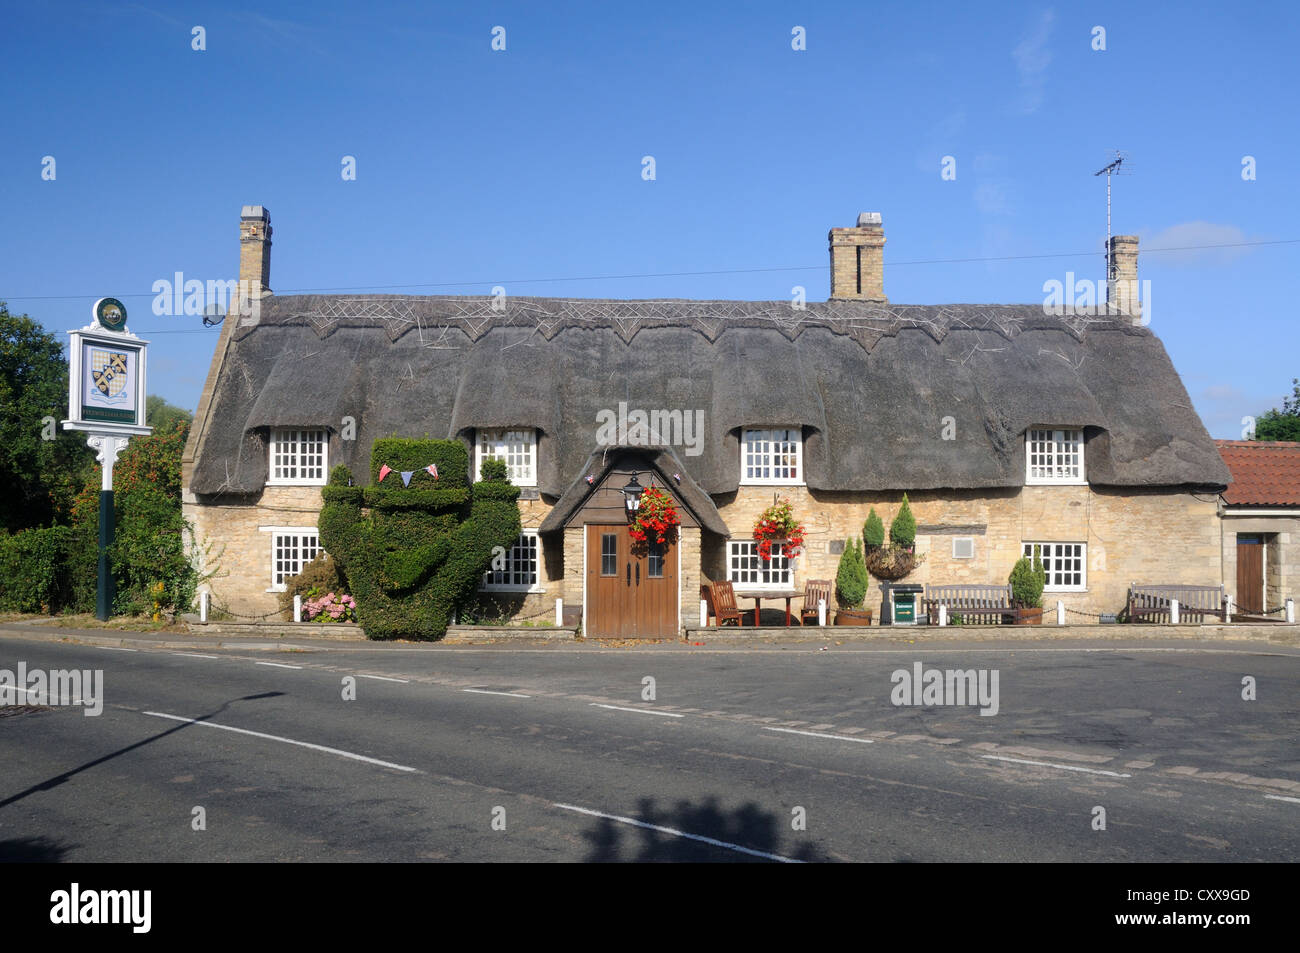 The Fitzwilliam Arms, in Marholm, Northamptonshire, England - Stock Image